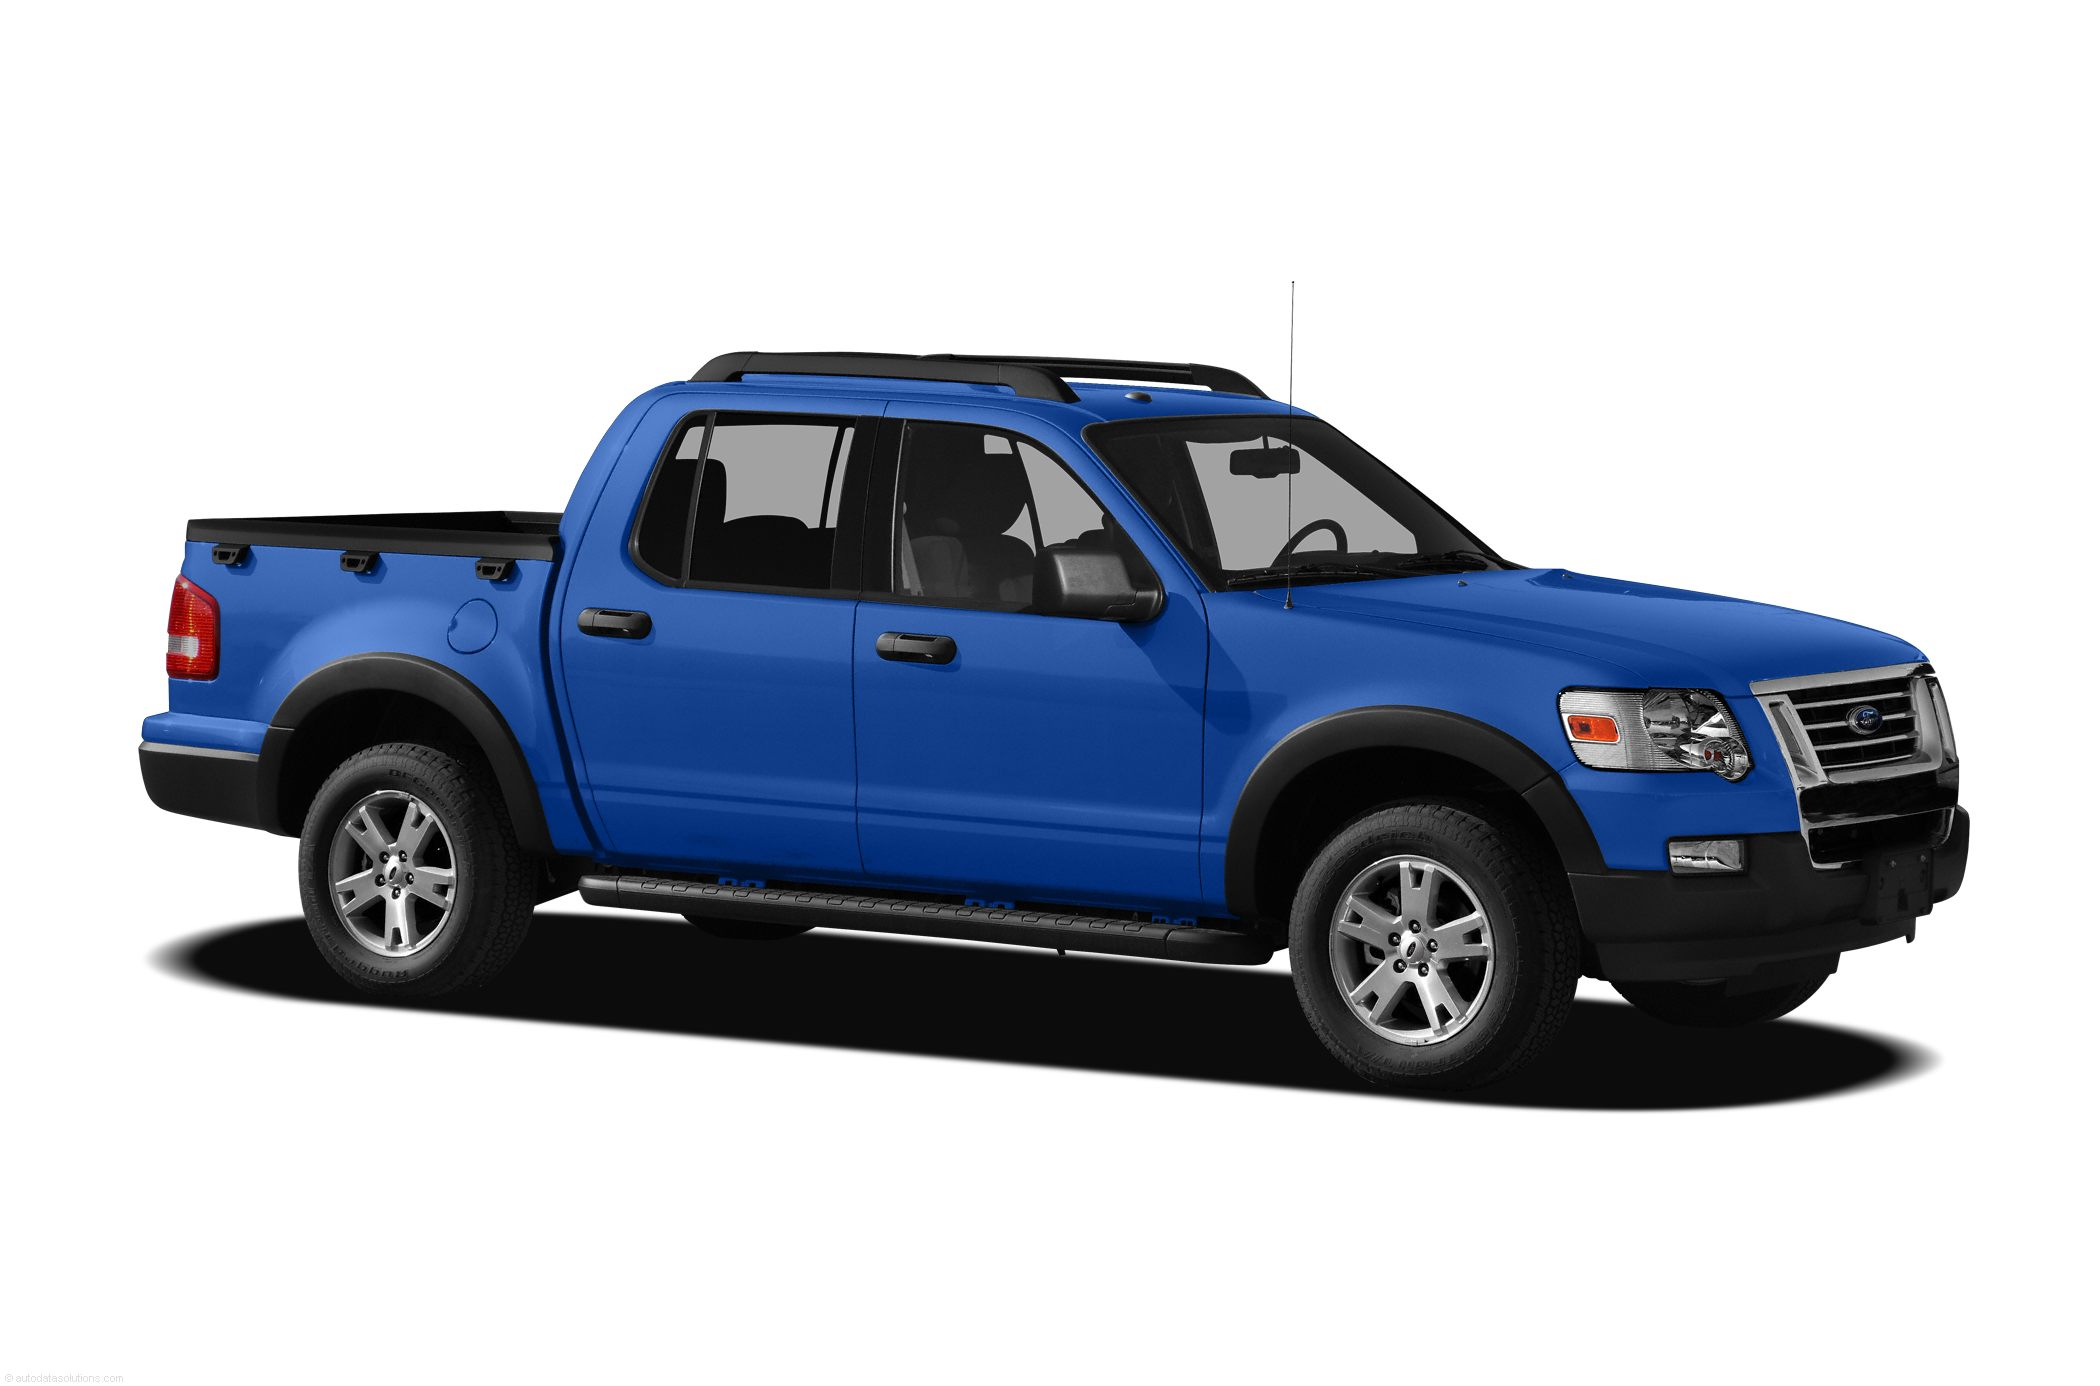 Ford Cars And Trucks : Ford truck review amazing pictures and images